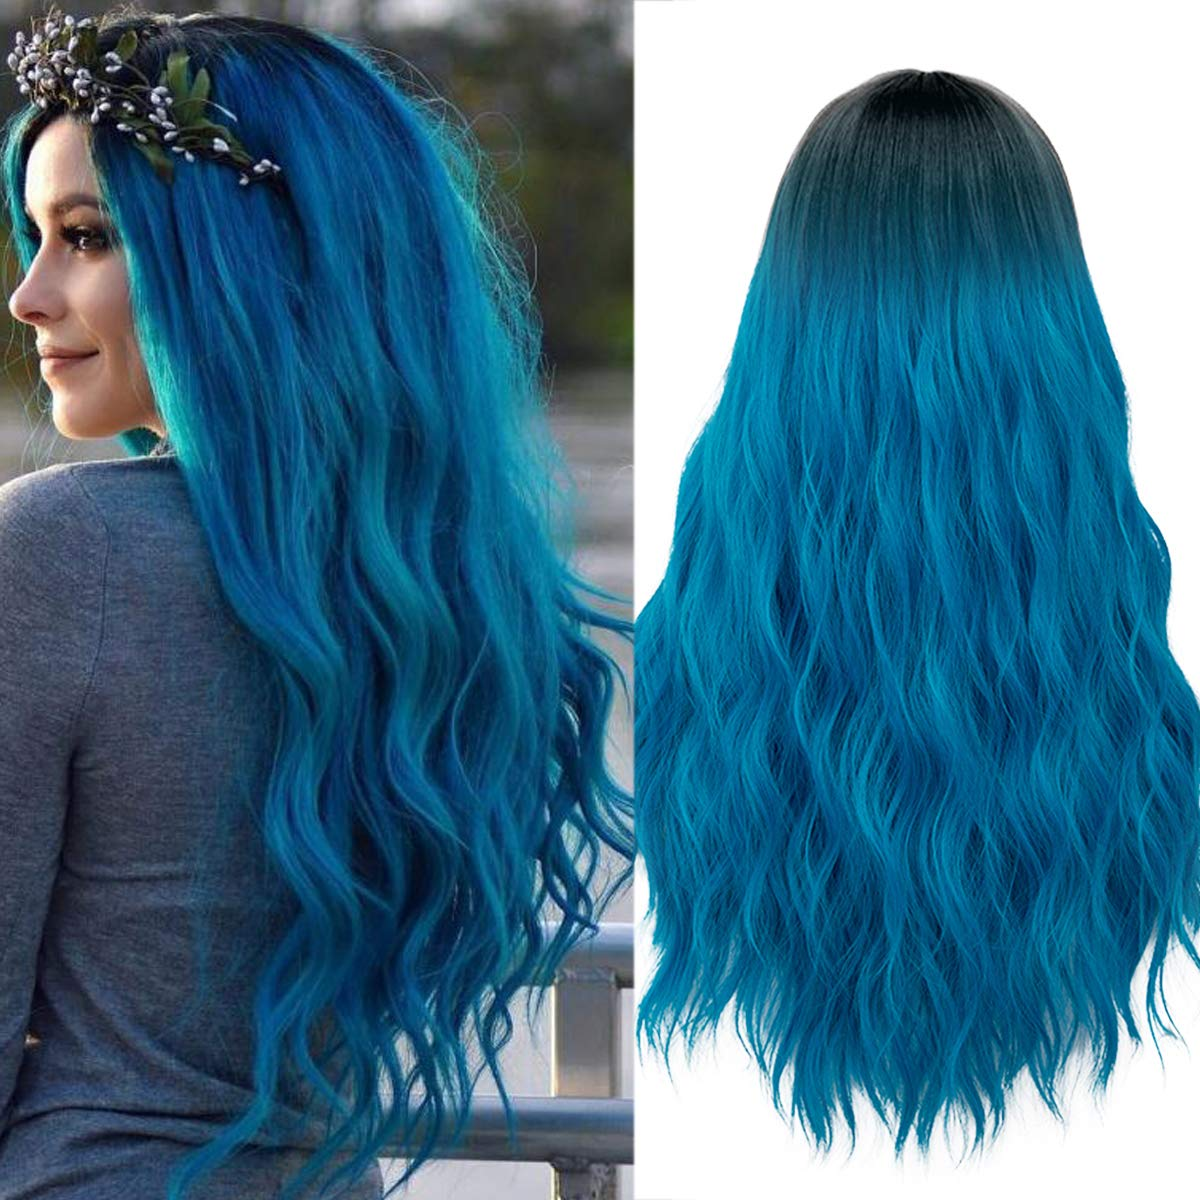 Mildiso Long Blue Wigs for Women Ombre Color Wavy Hair Wig Natural Looking Perfect for Daily Party Cosply 052B by Mildiso